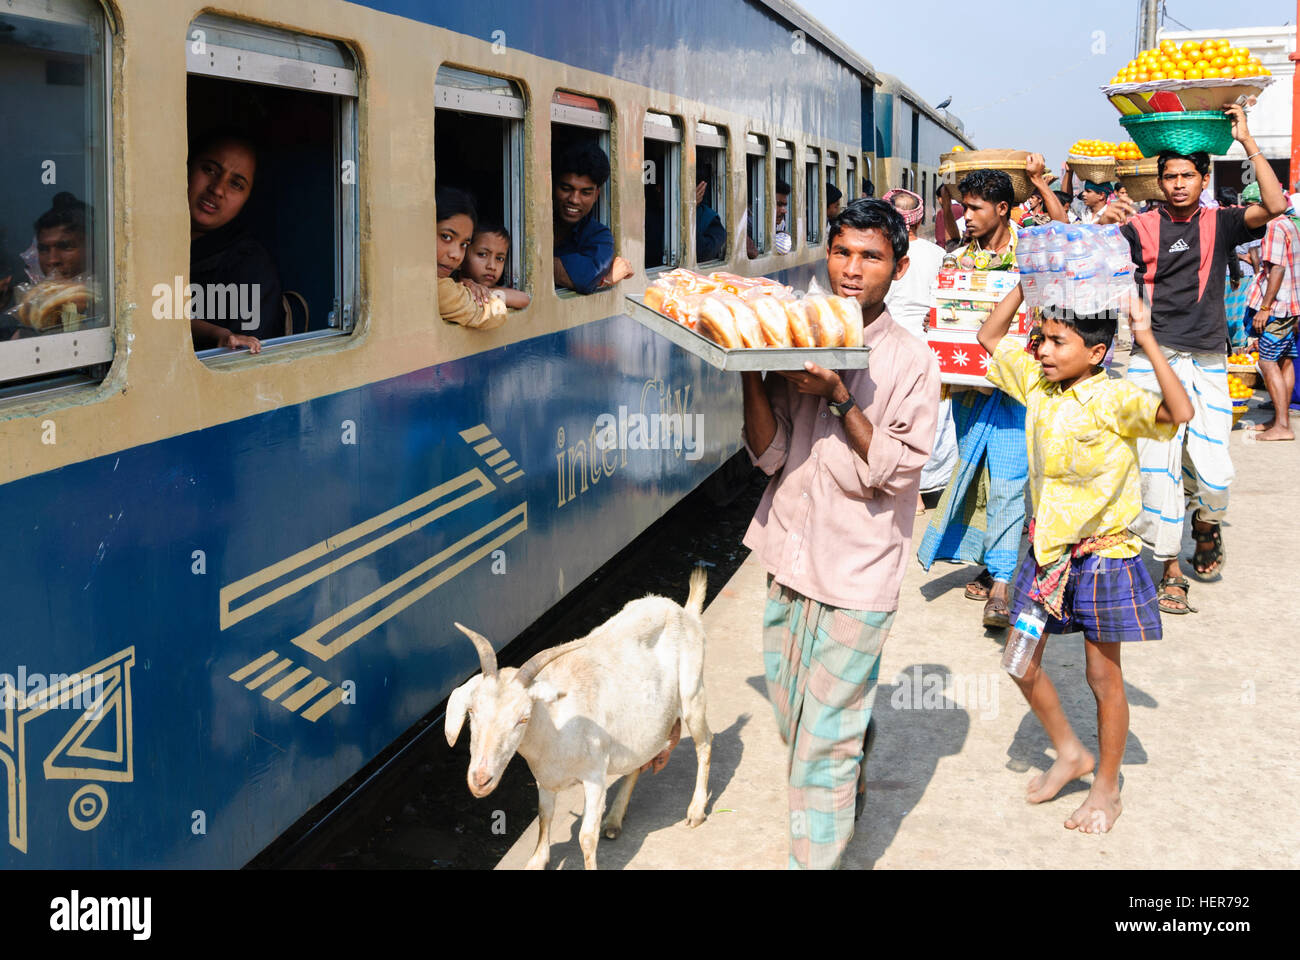 Akhaura: Intercity train in the station, snack salesman with food on head, Chittagong Division, Bangladesh - Stock Image